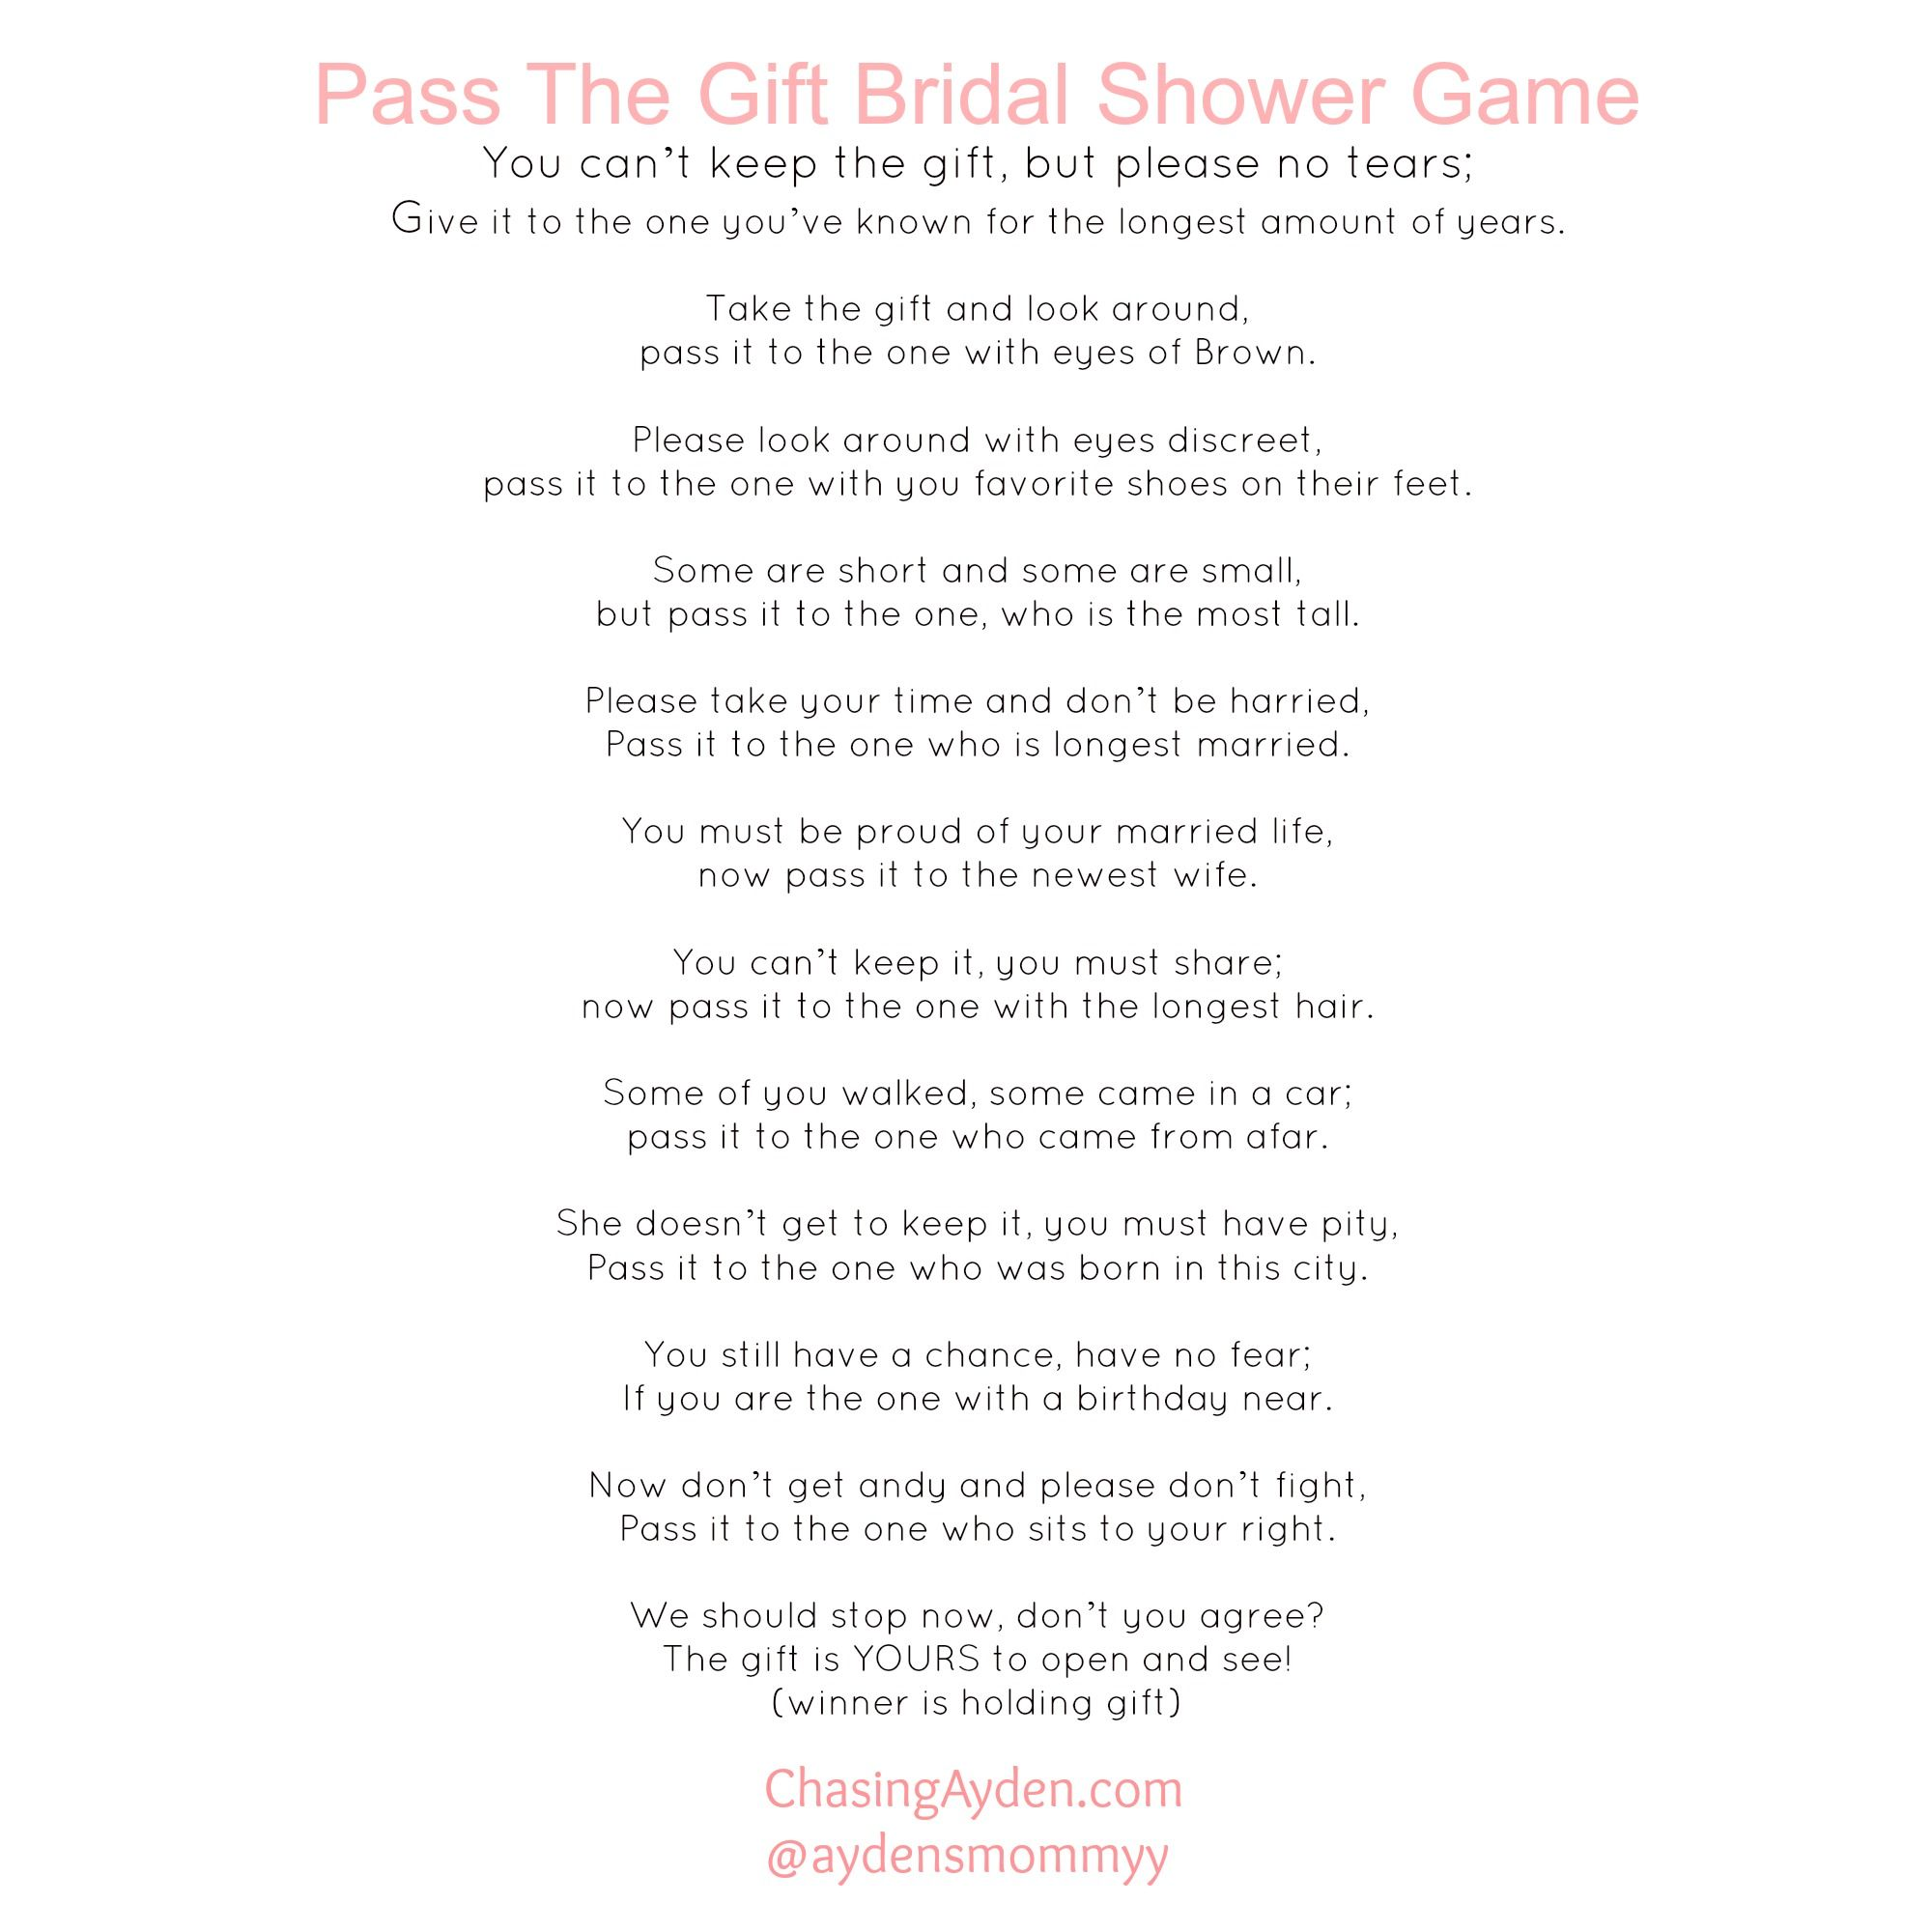 Delightful Baby Shower Pass The Parcel Story Part - 10: Pass The Gift Bridal Shower Game Free Printable  Http:/chasingayden.com/ashleys